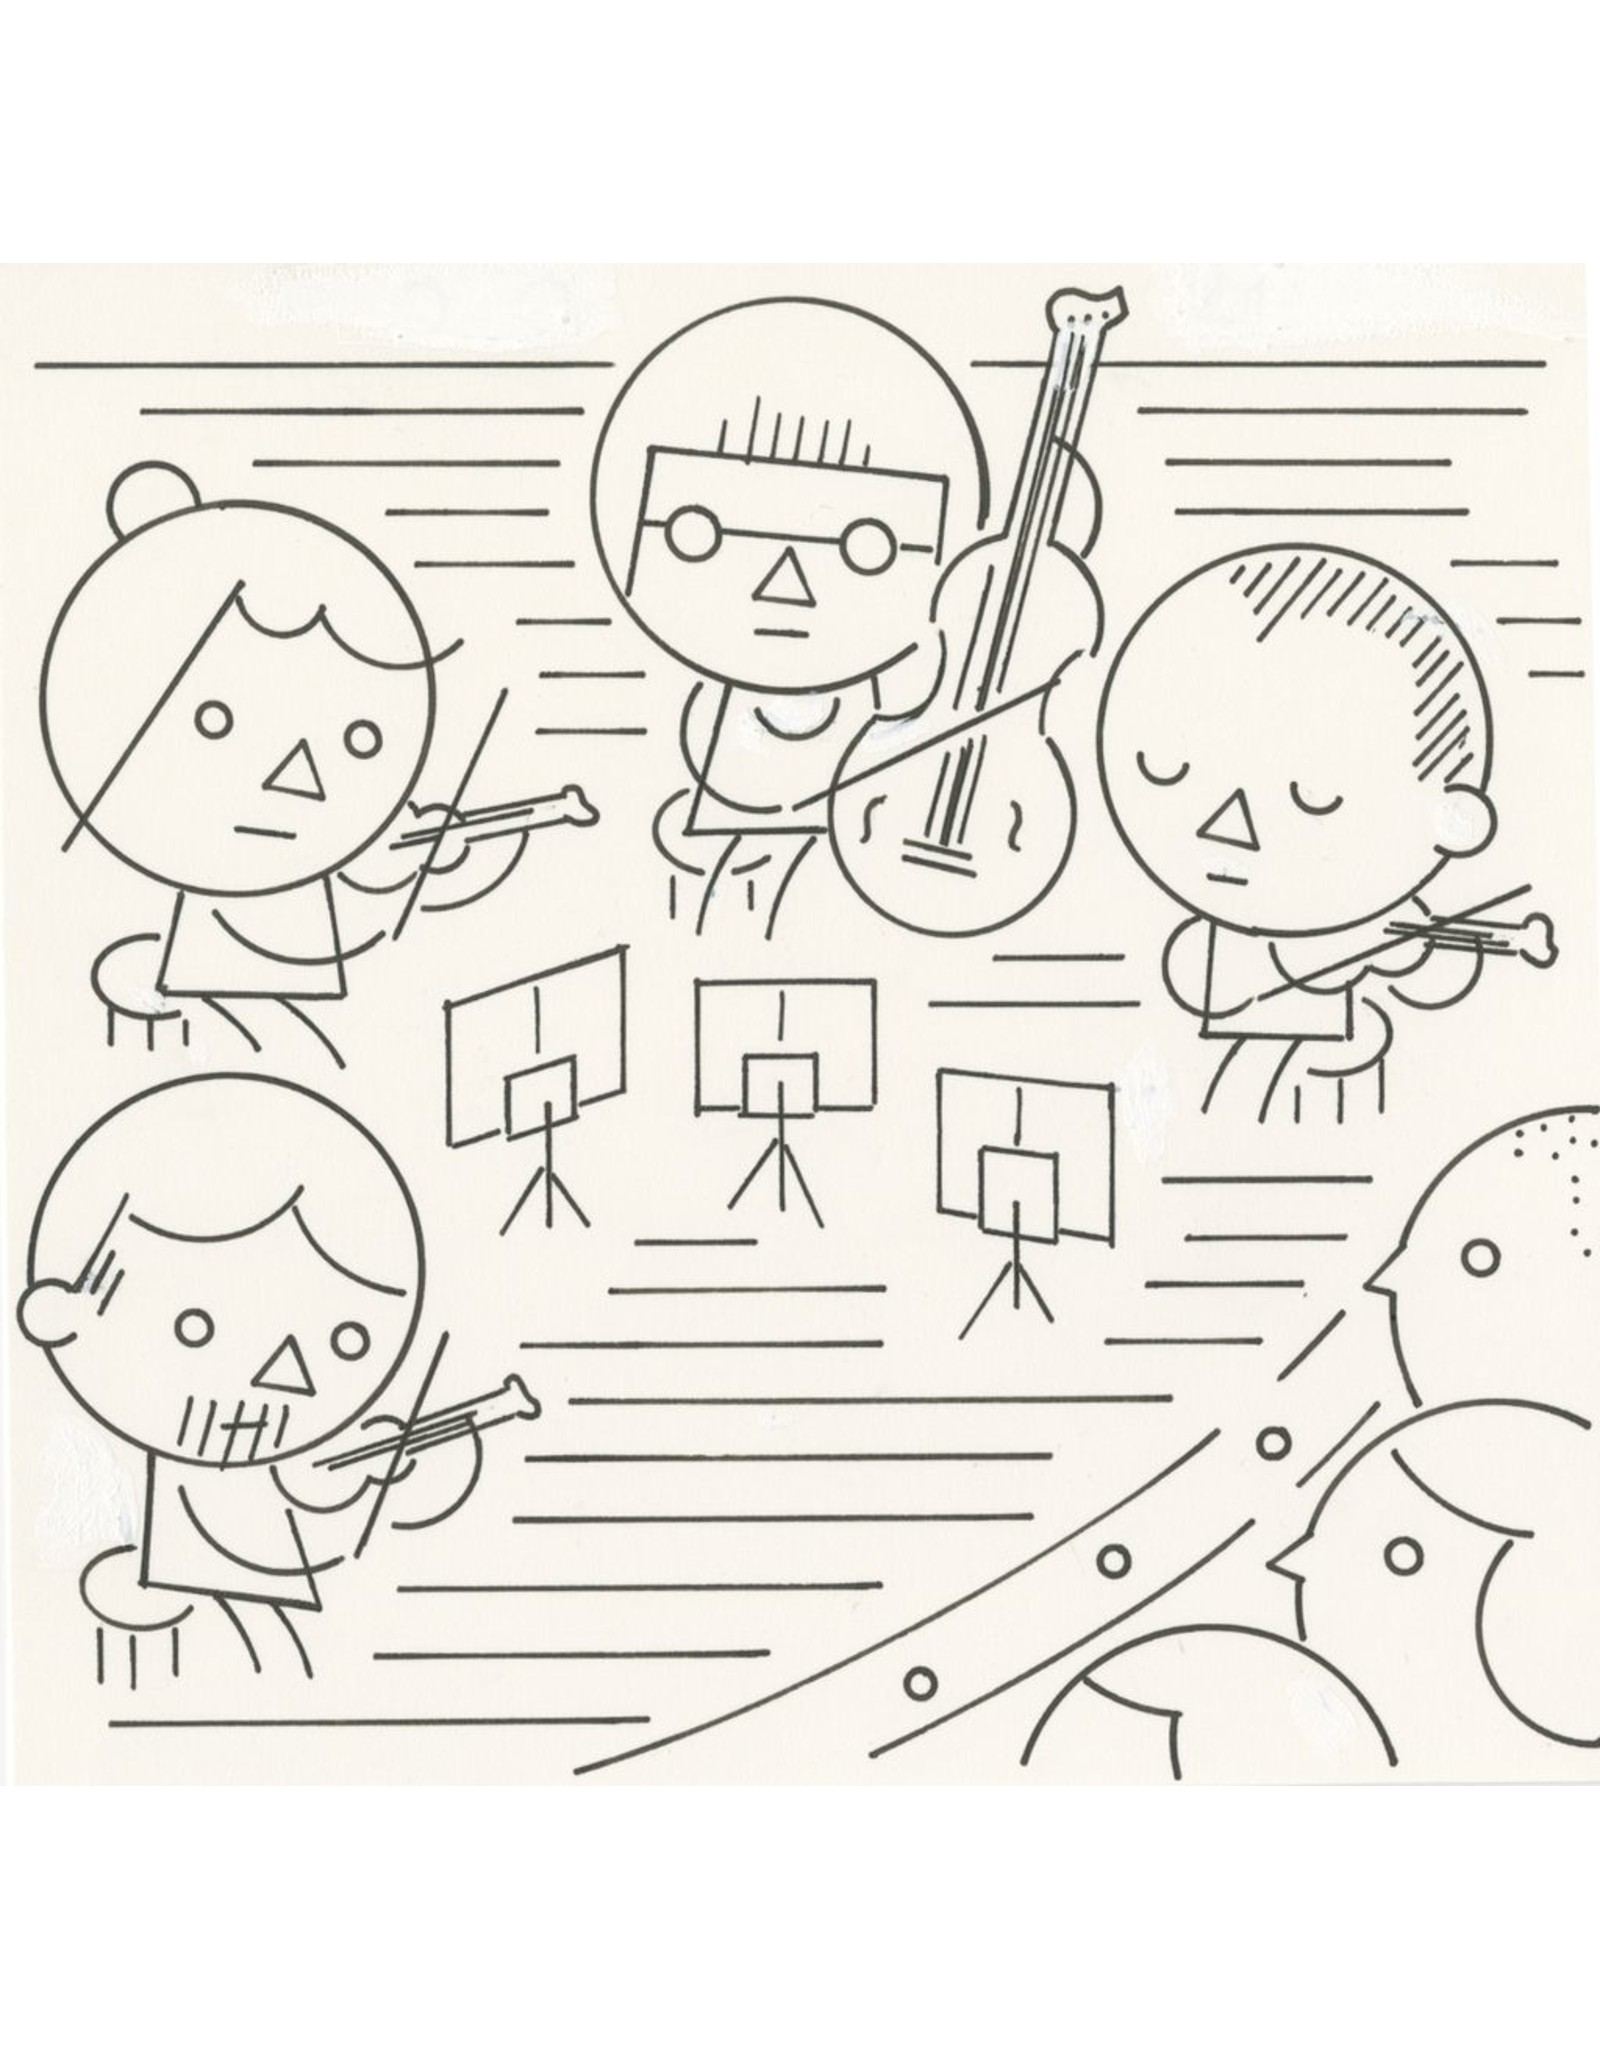 Ivan Brunetti Classical, Illustration by Ivan Brunetti for the New Yorker, Goings On About Town, September 12, 2013